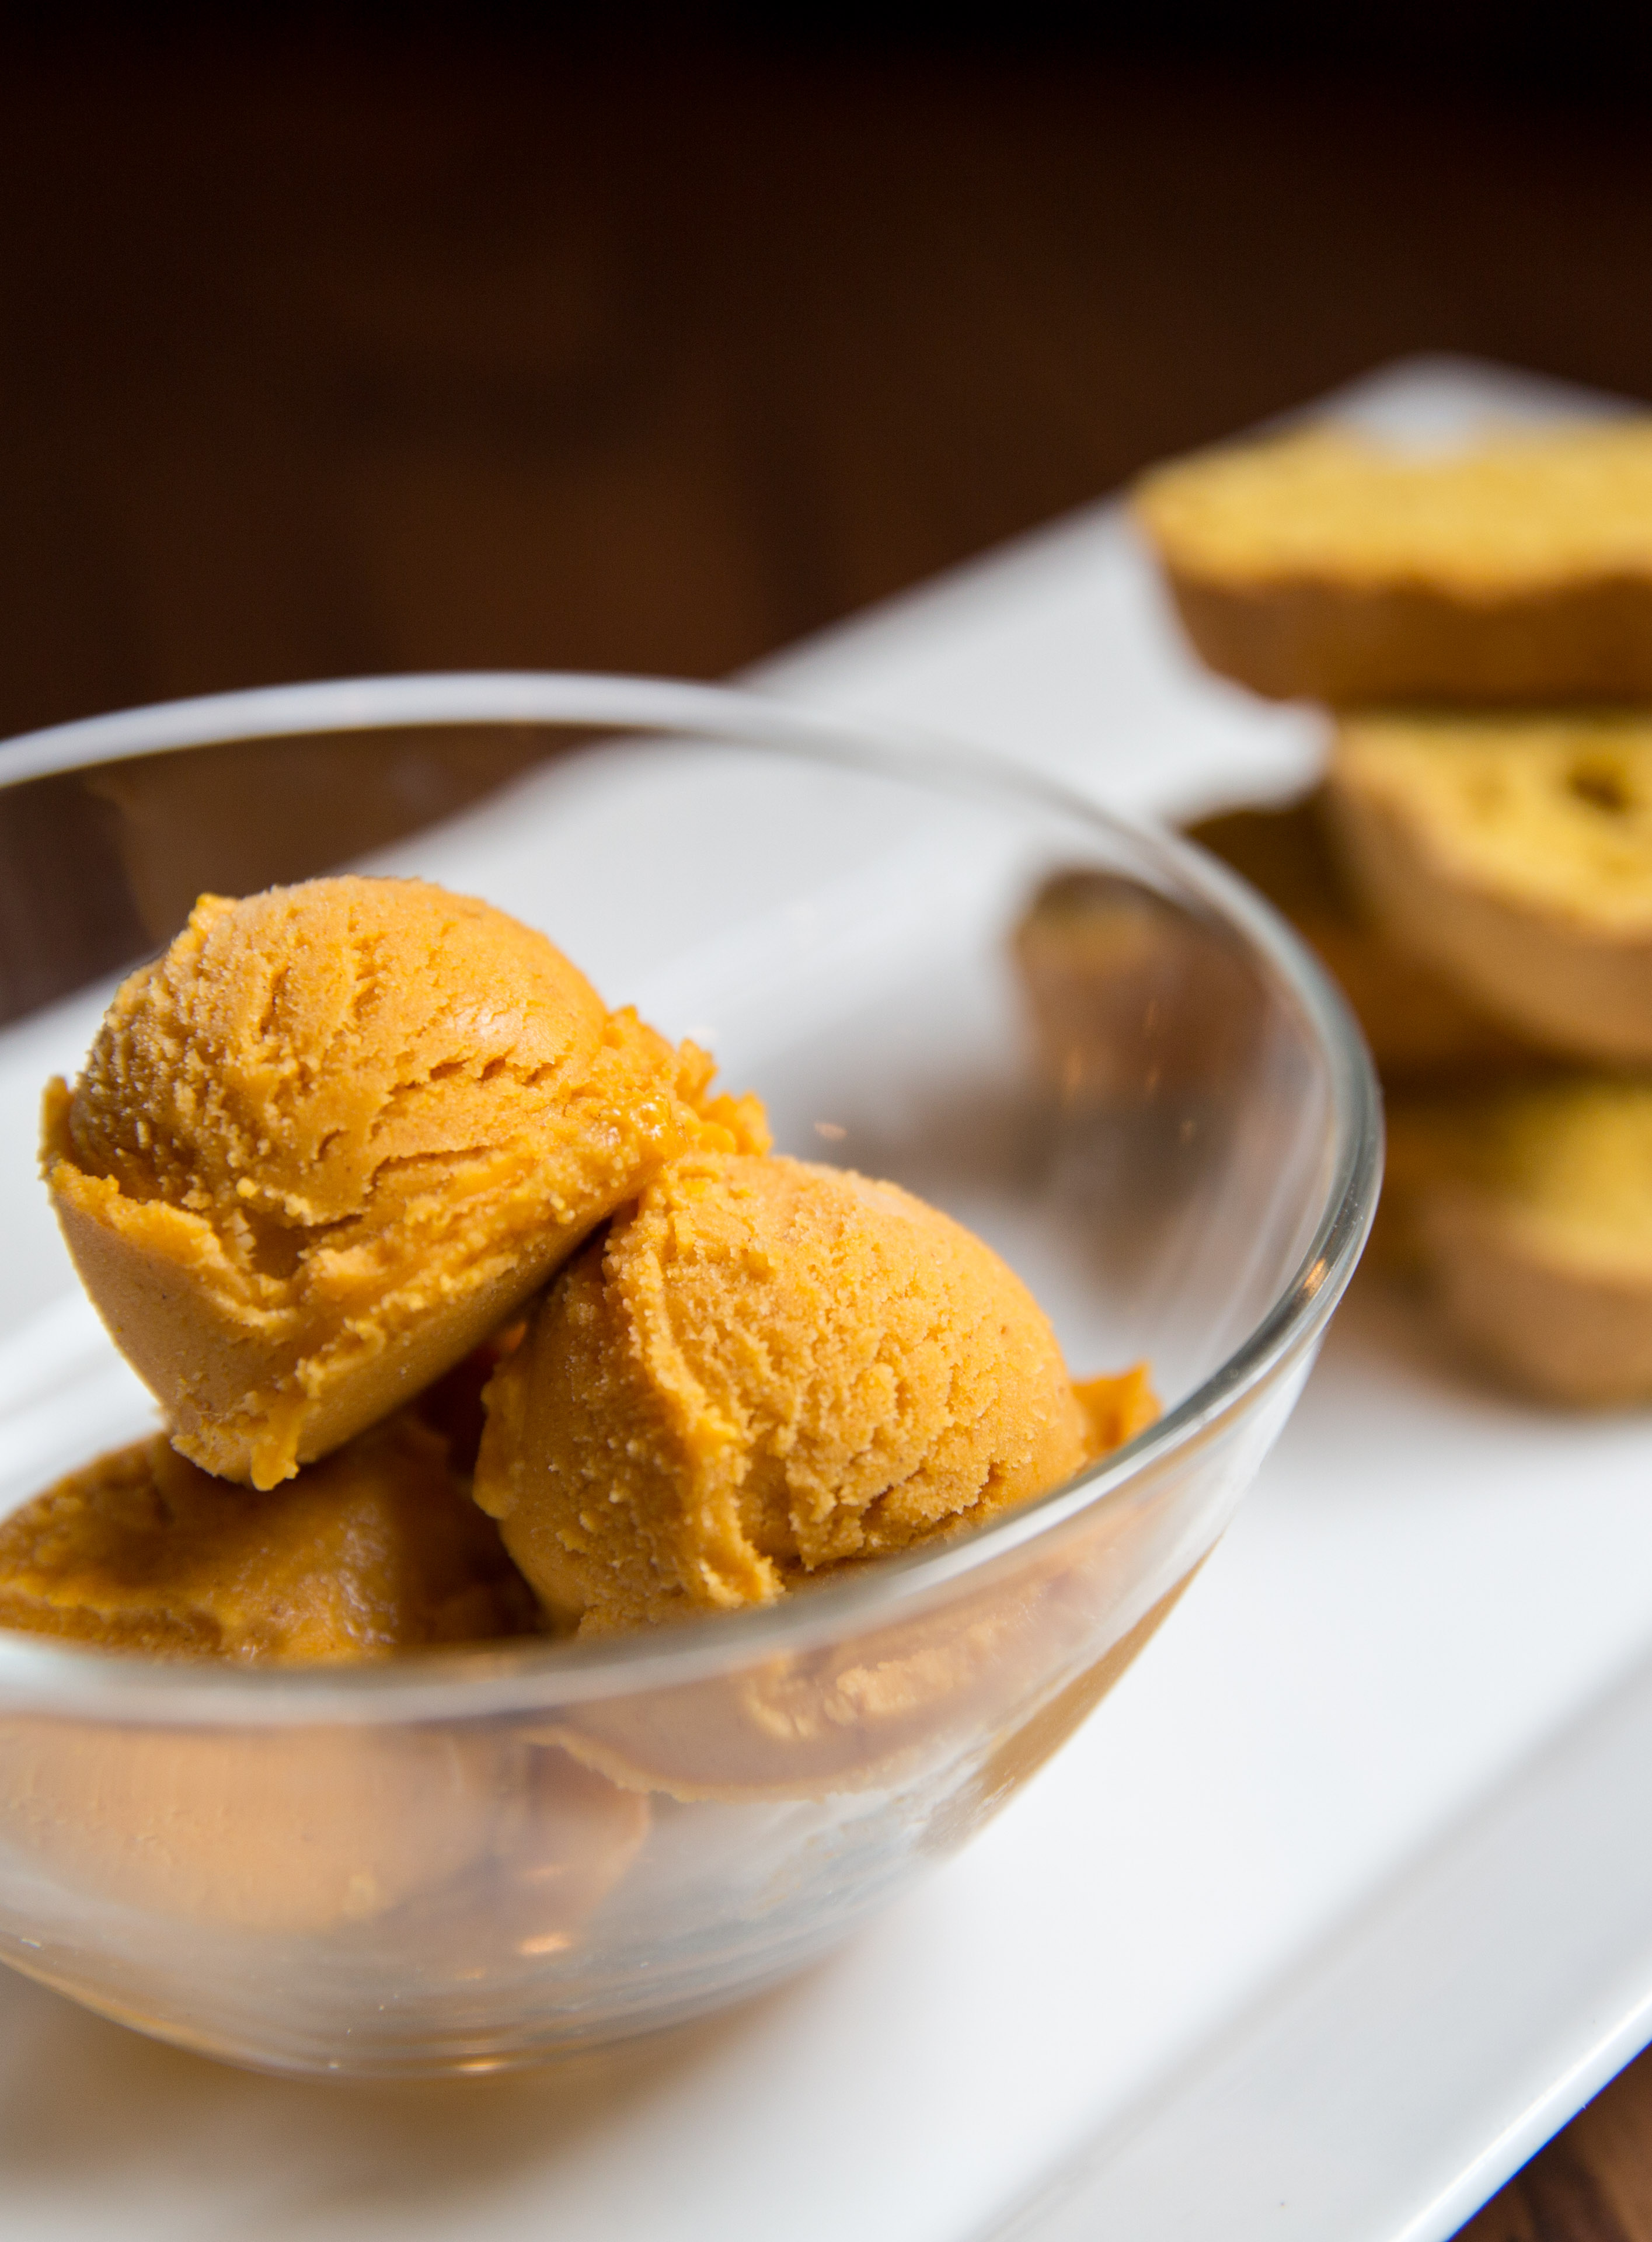 <p>Pumpkin Gelato ($9), with pumpkin biscotti.{&nbsp;} You can find these amazing pumpkin items at Tulio until October 31! (Image: Adela Lee).</p>